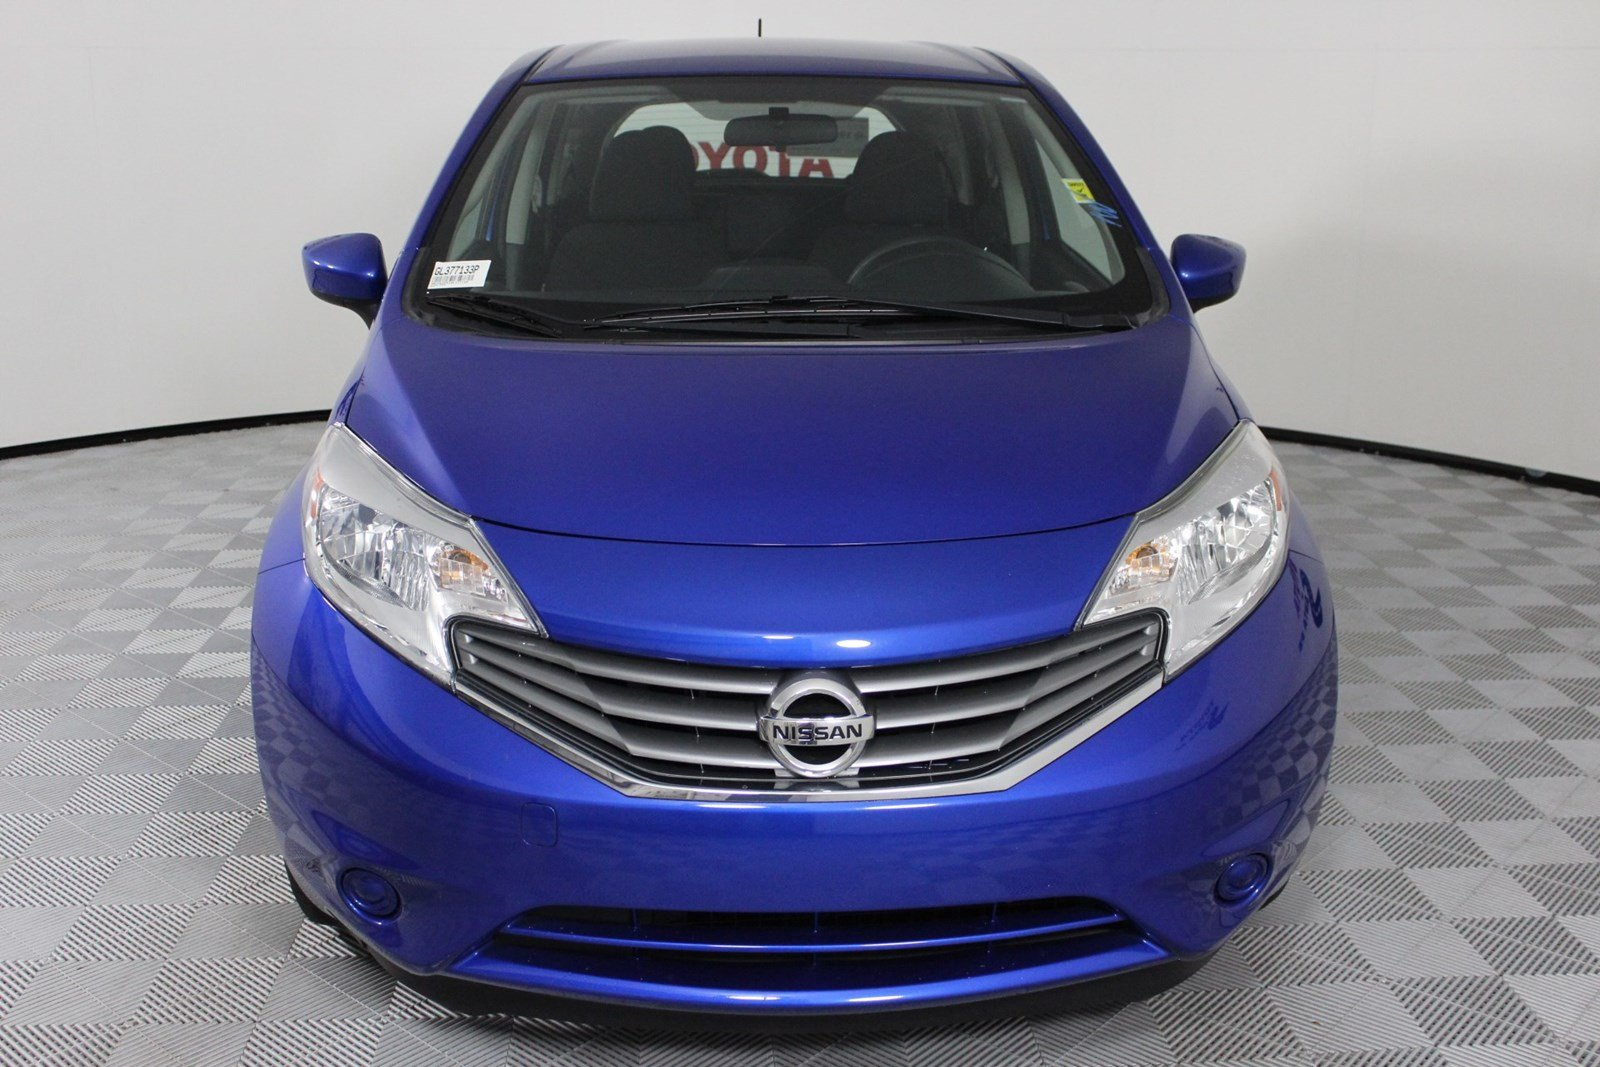 Pre-Owned 2016 Nissan Versa Note S Plus FWD Hatchback